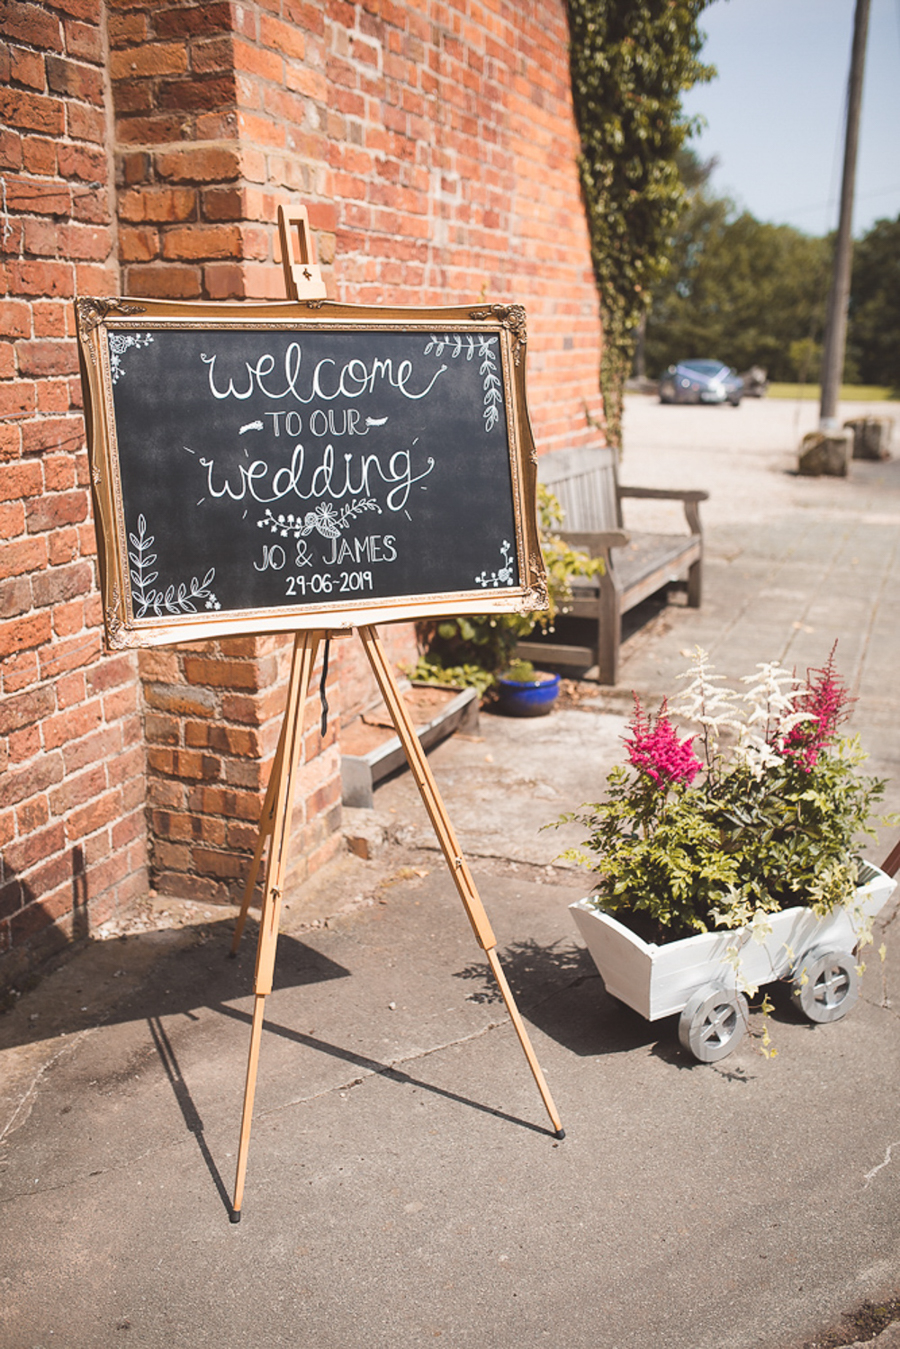 Jo & James's beautifully rustic Pimhill Barn wedding, with Brightwing Photography (9)